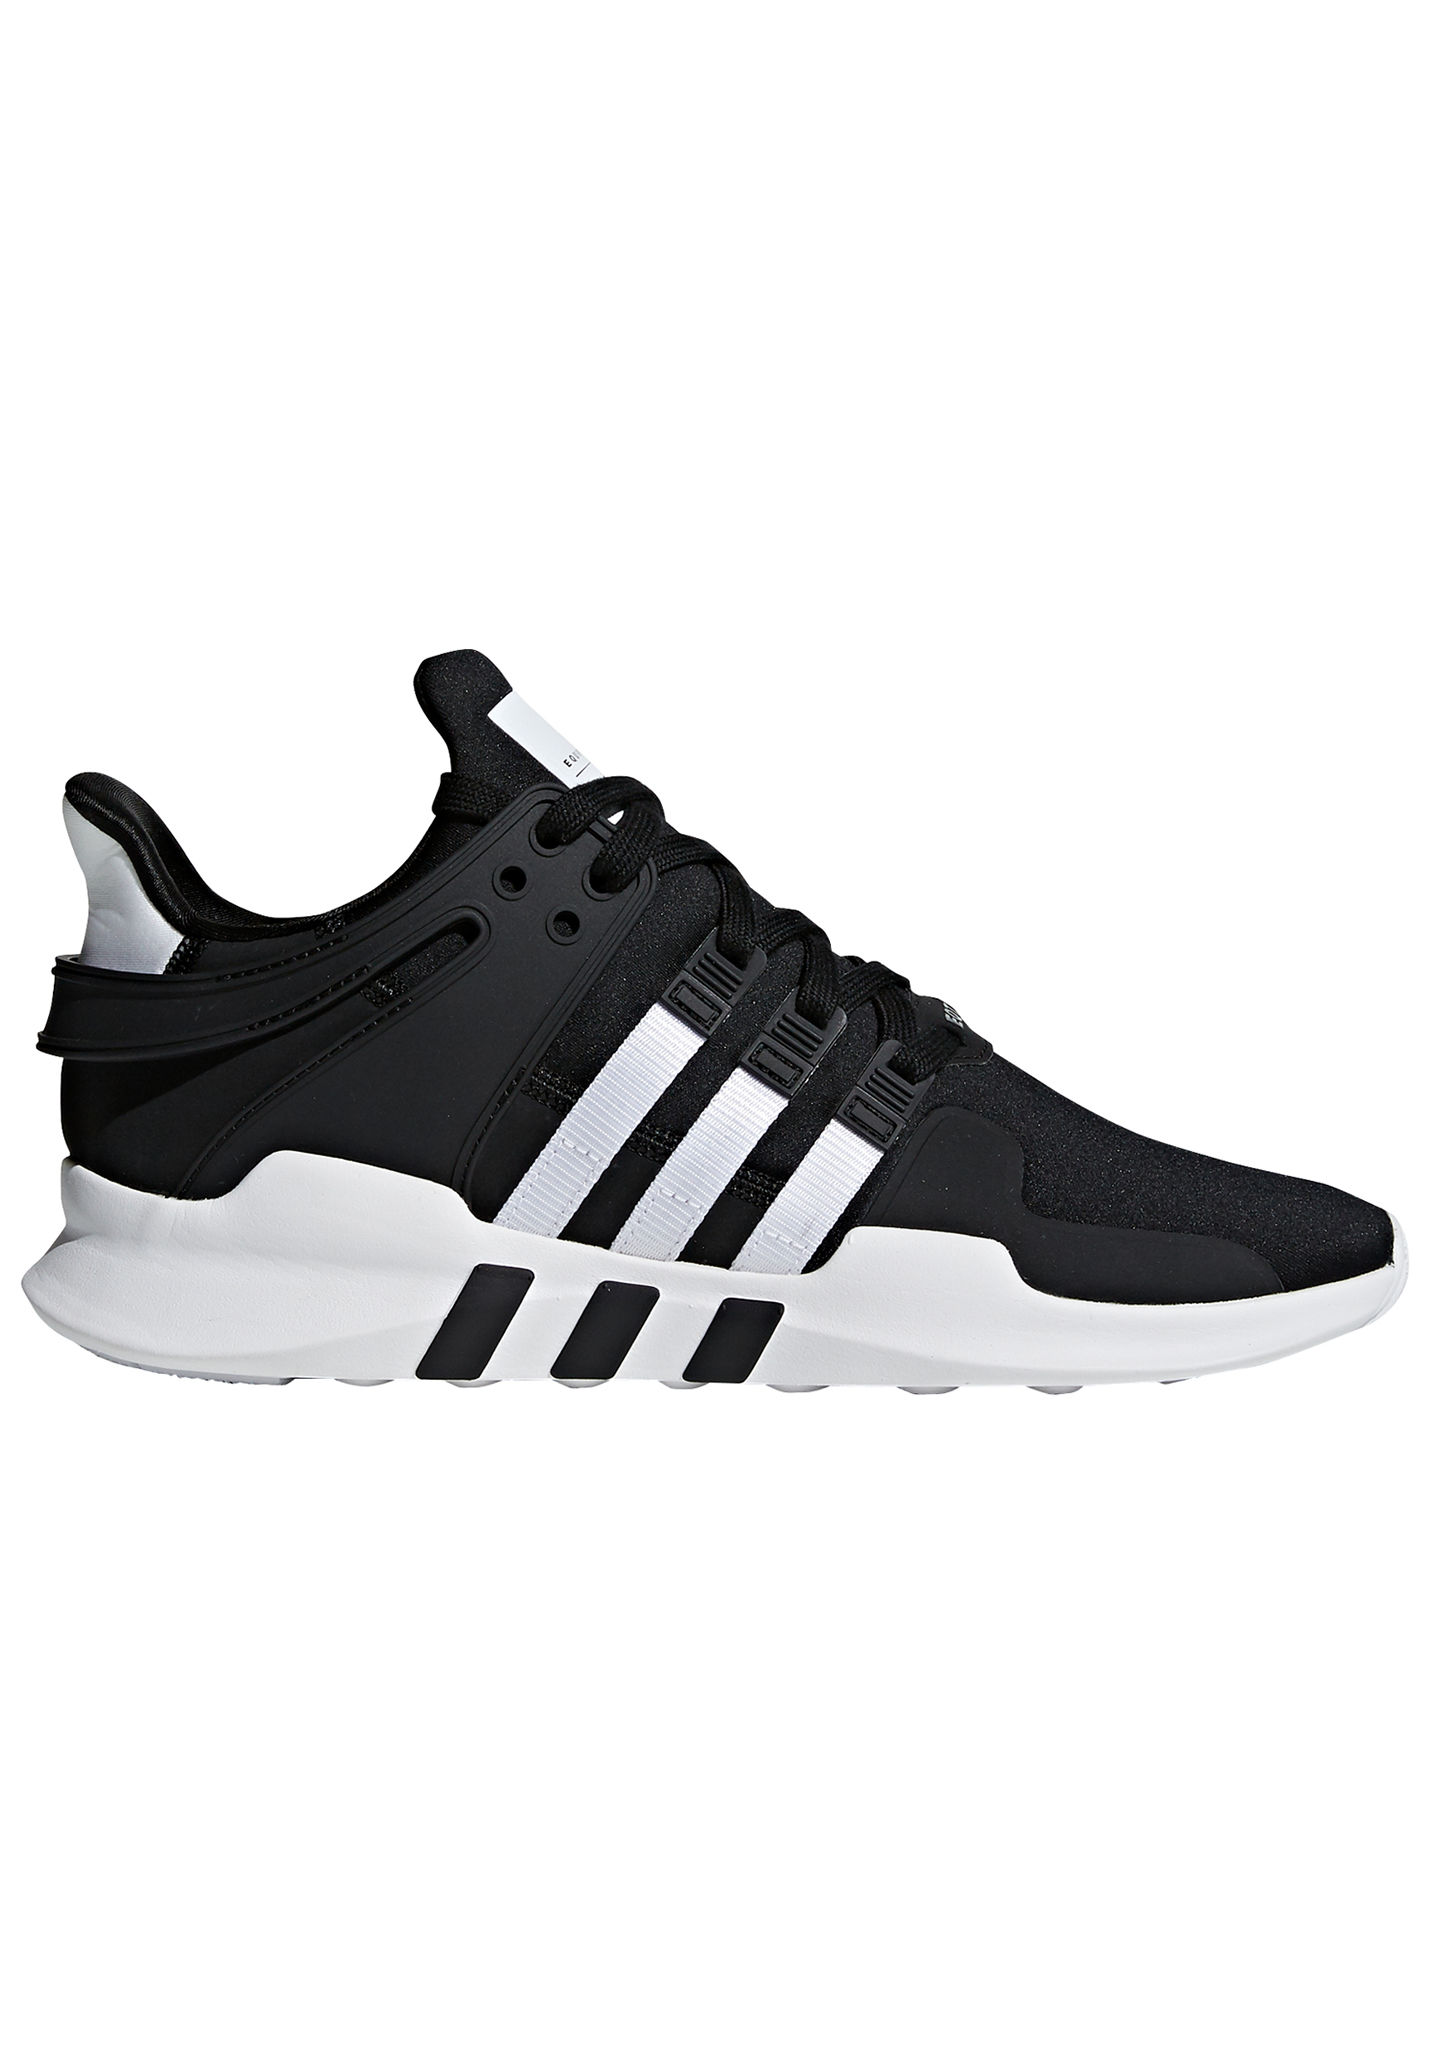 the best attitude 561c7 e08c9 ADIDAS ORIGINALS EQT Support ADV - Baskets pour Homme - Noir - Planet Sports